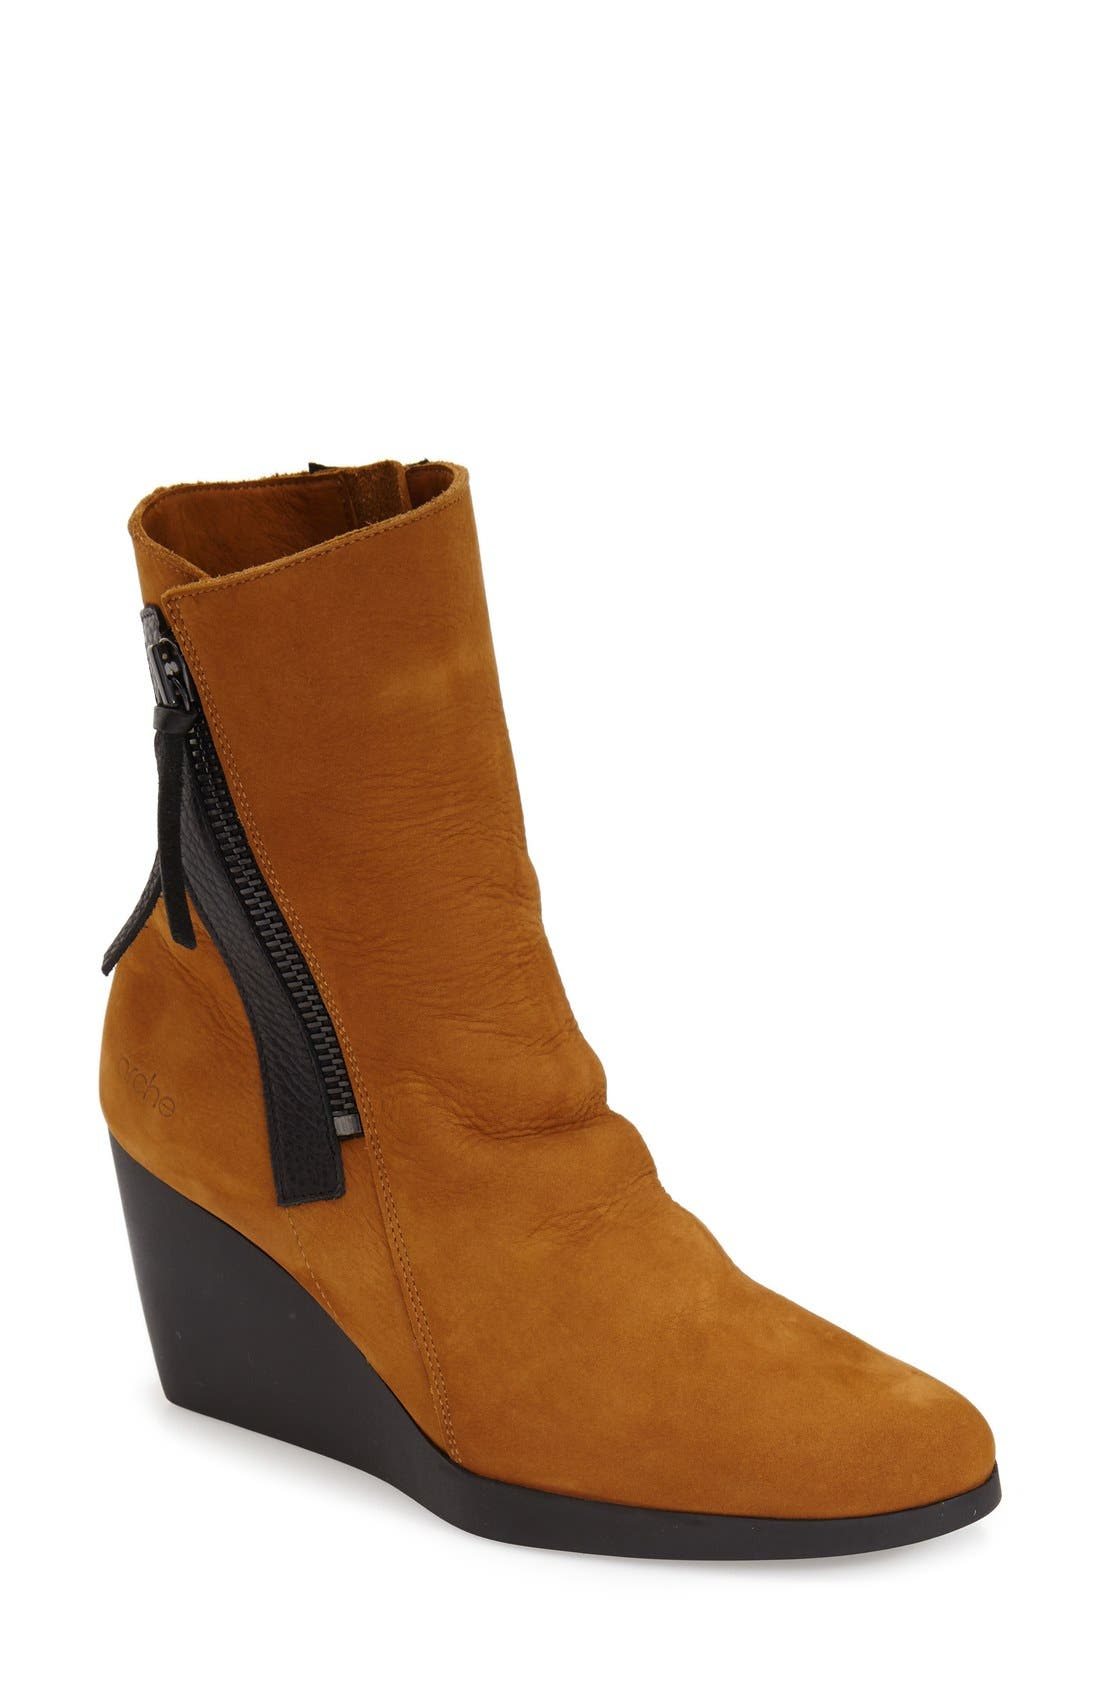 'Vitahe' Water ResistantBoot,                             Main thumbnail 1, color,                             Almond Nubuck Leather